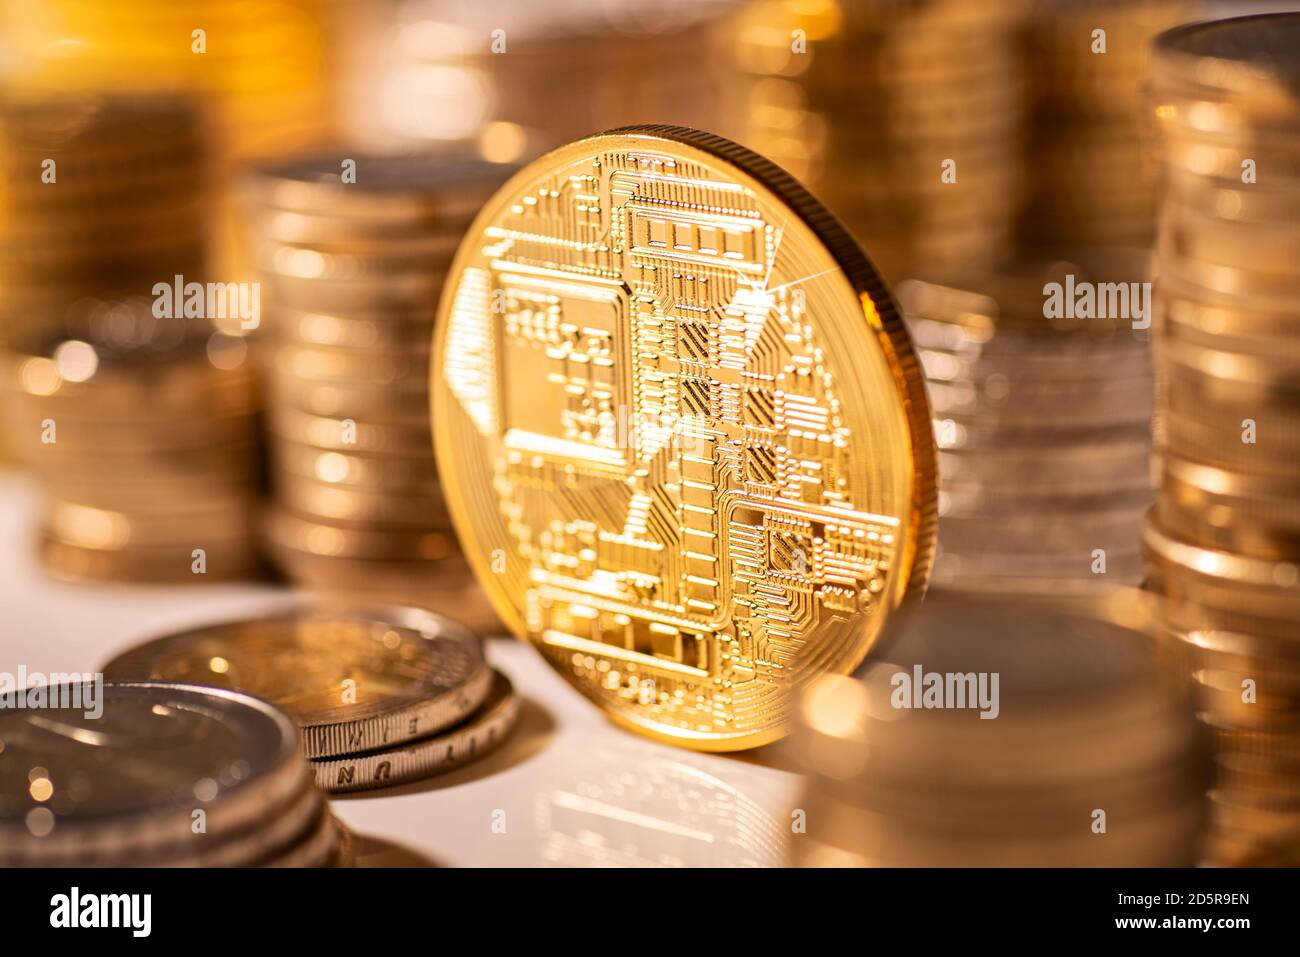 Coin with the pictogram of a circuit board as symbol for crypto currencies Stock Photo